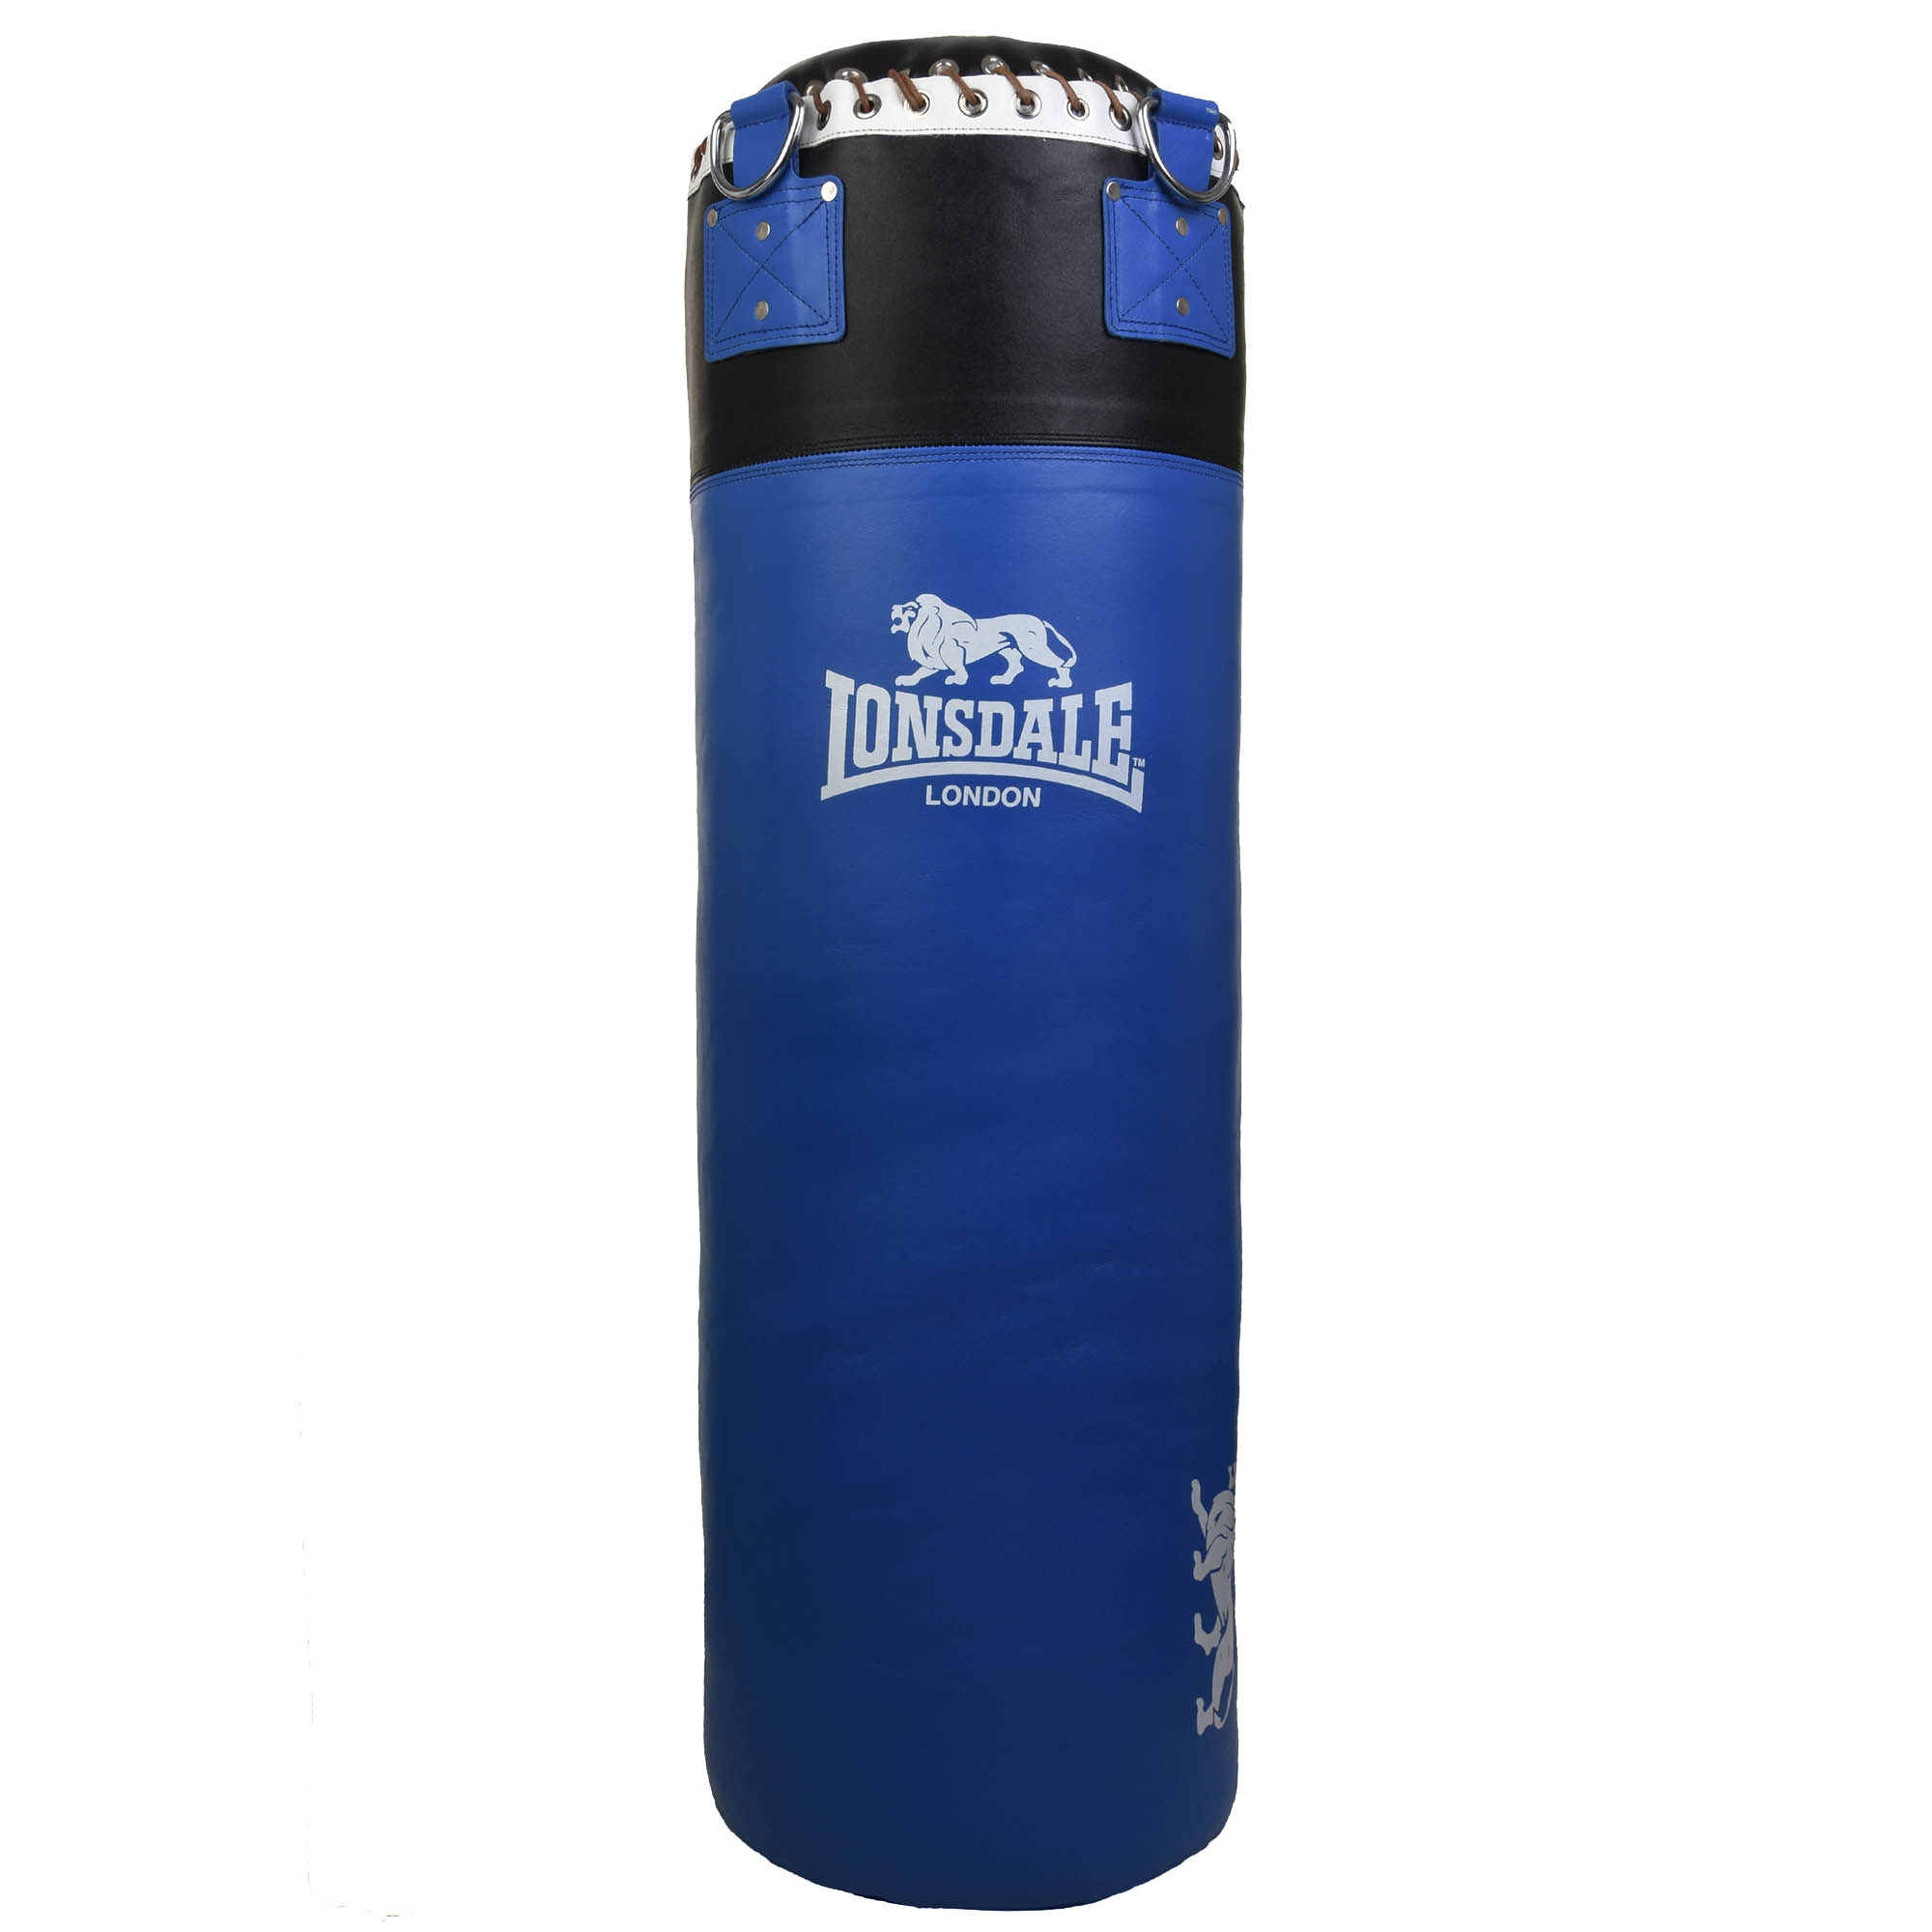 Lonsdale L60 4ft Extra Heavy Leather Punch Bag – Blue/Black